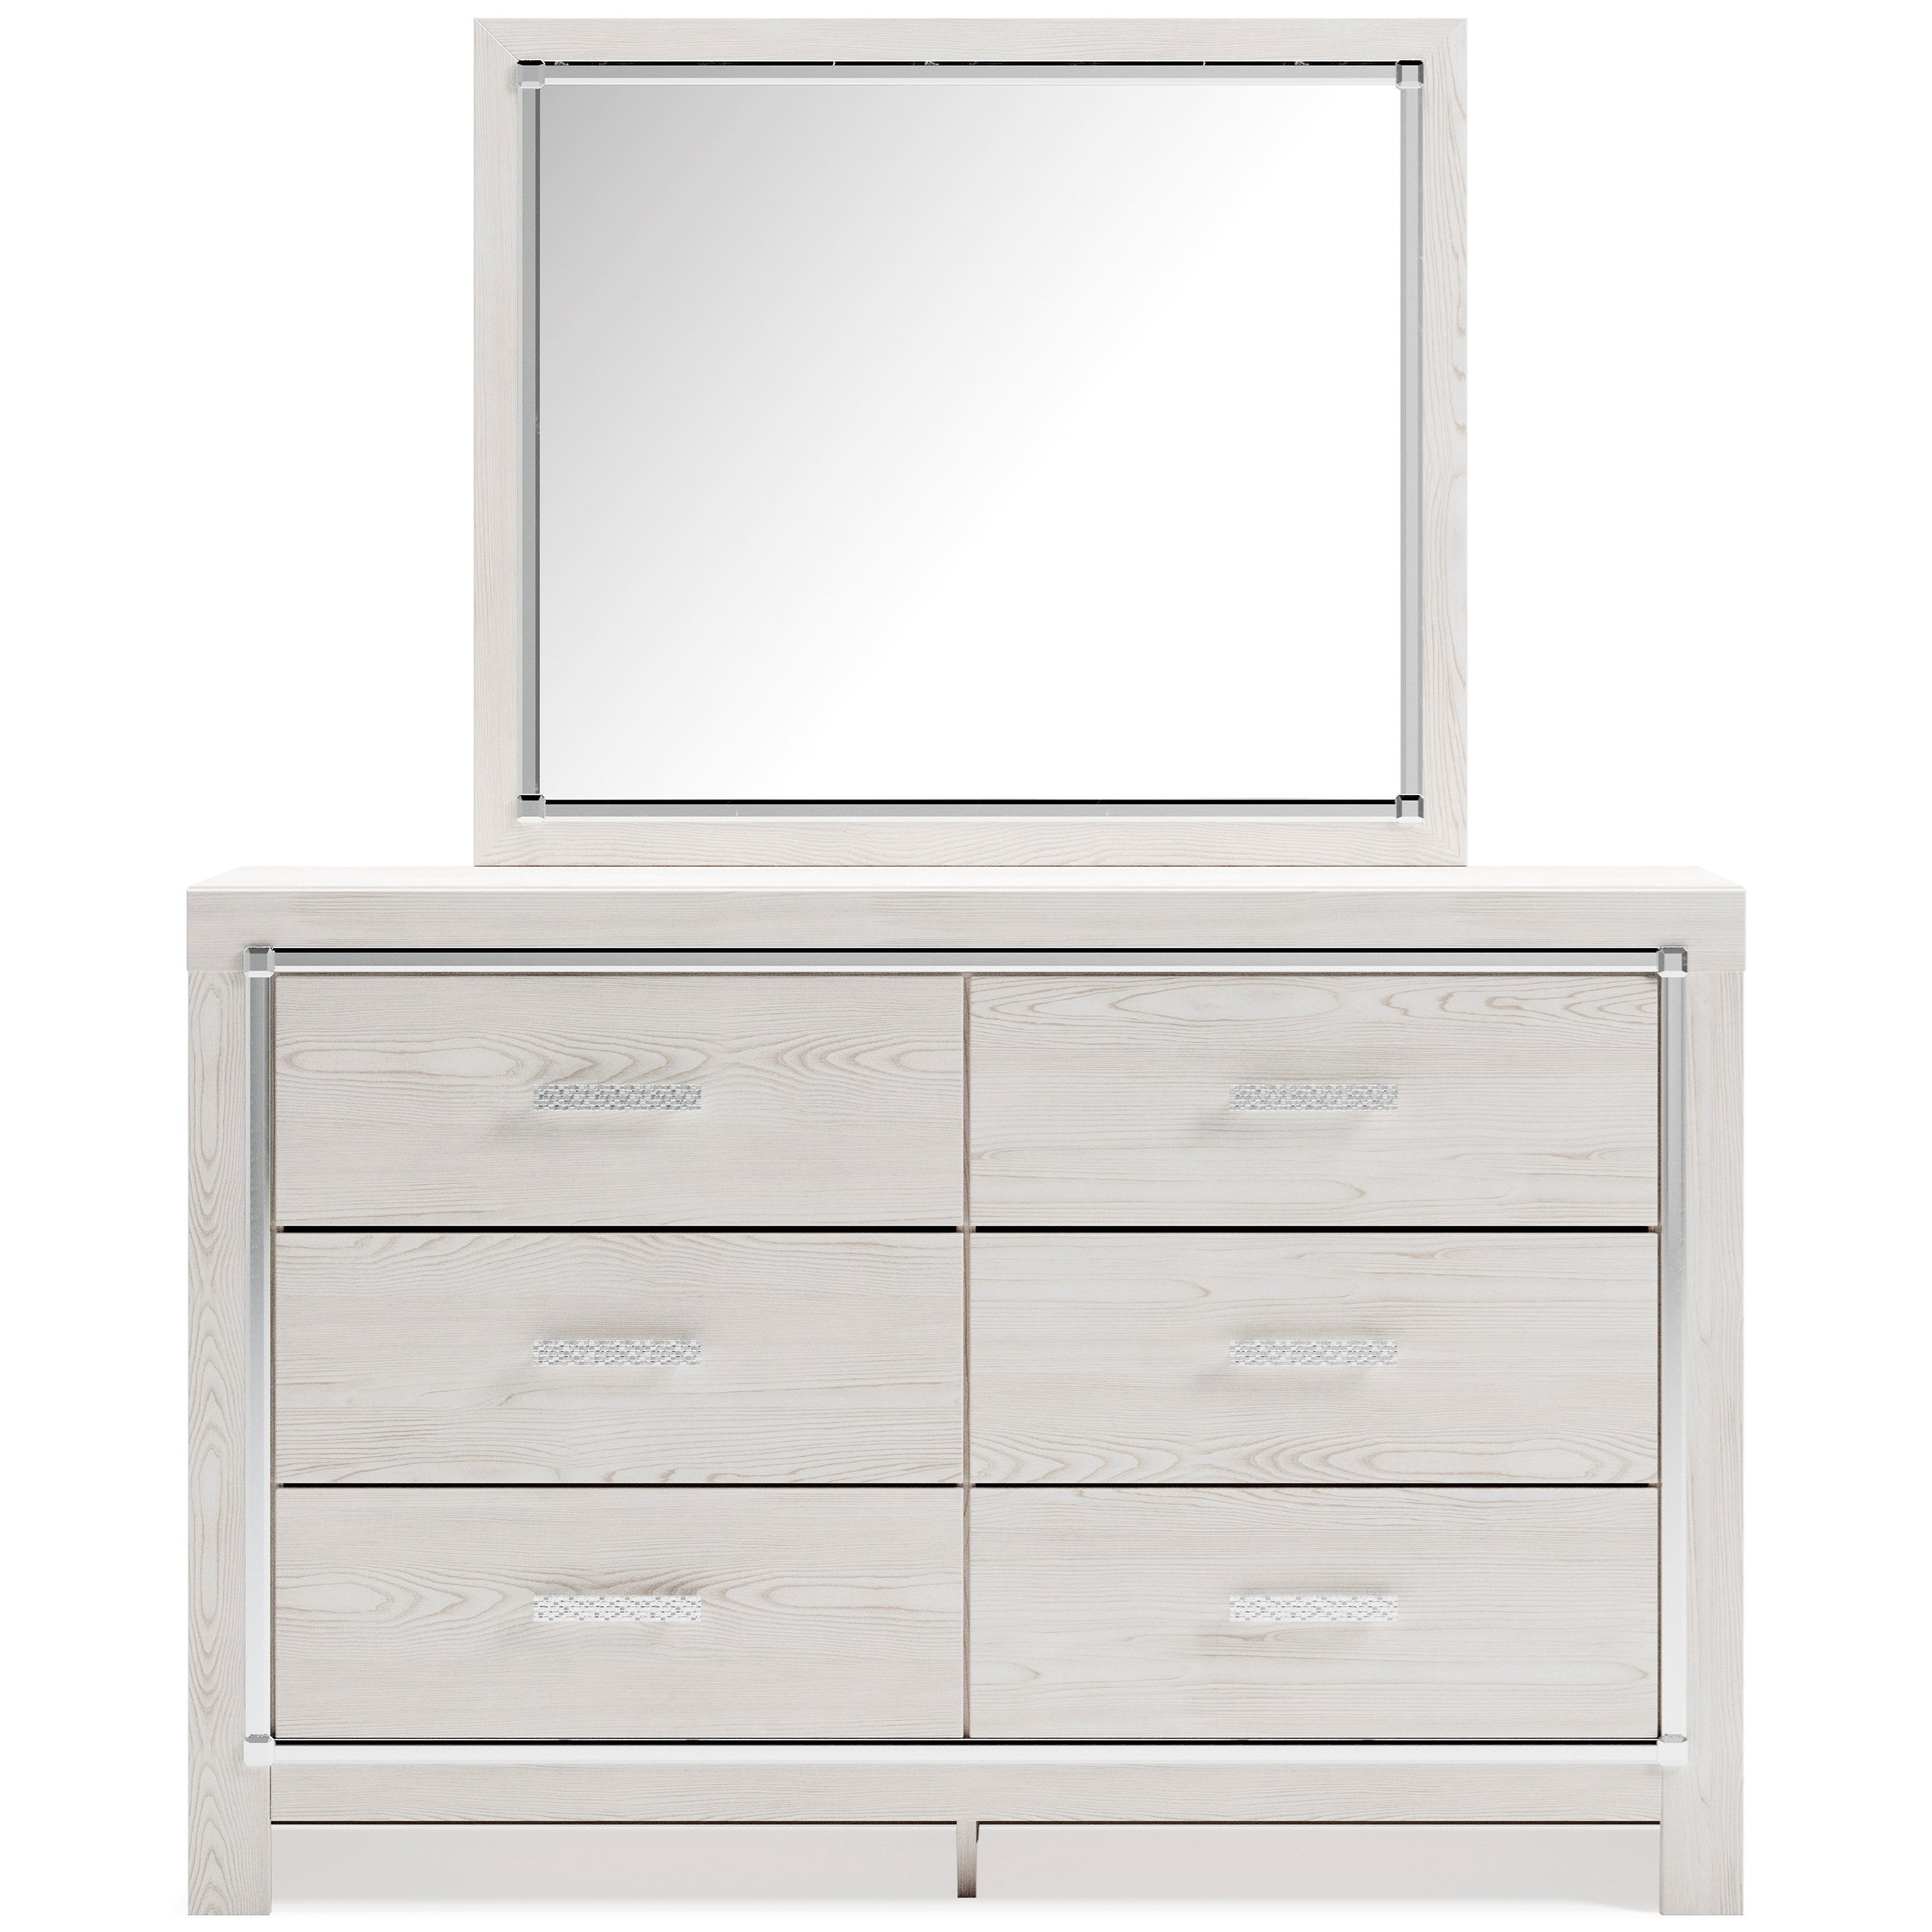 Altyra Dresser & Bedroom Mirror by Signature Design by Ashley at Furniture and ApplianceMart